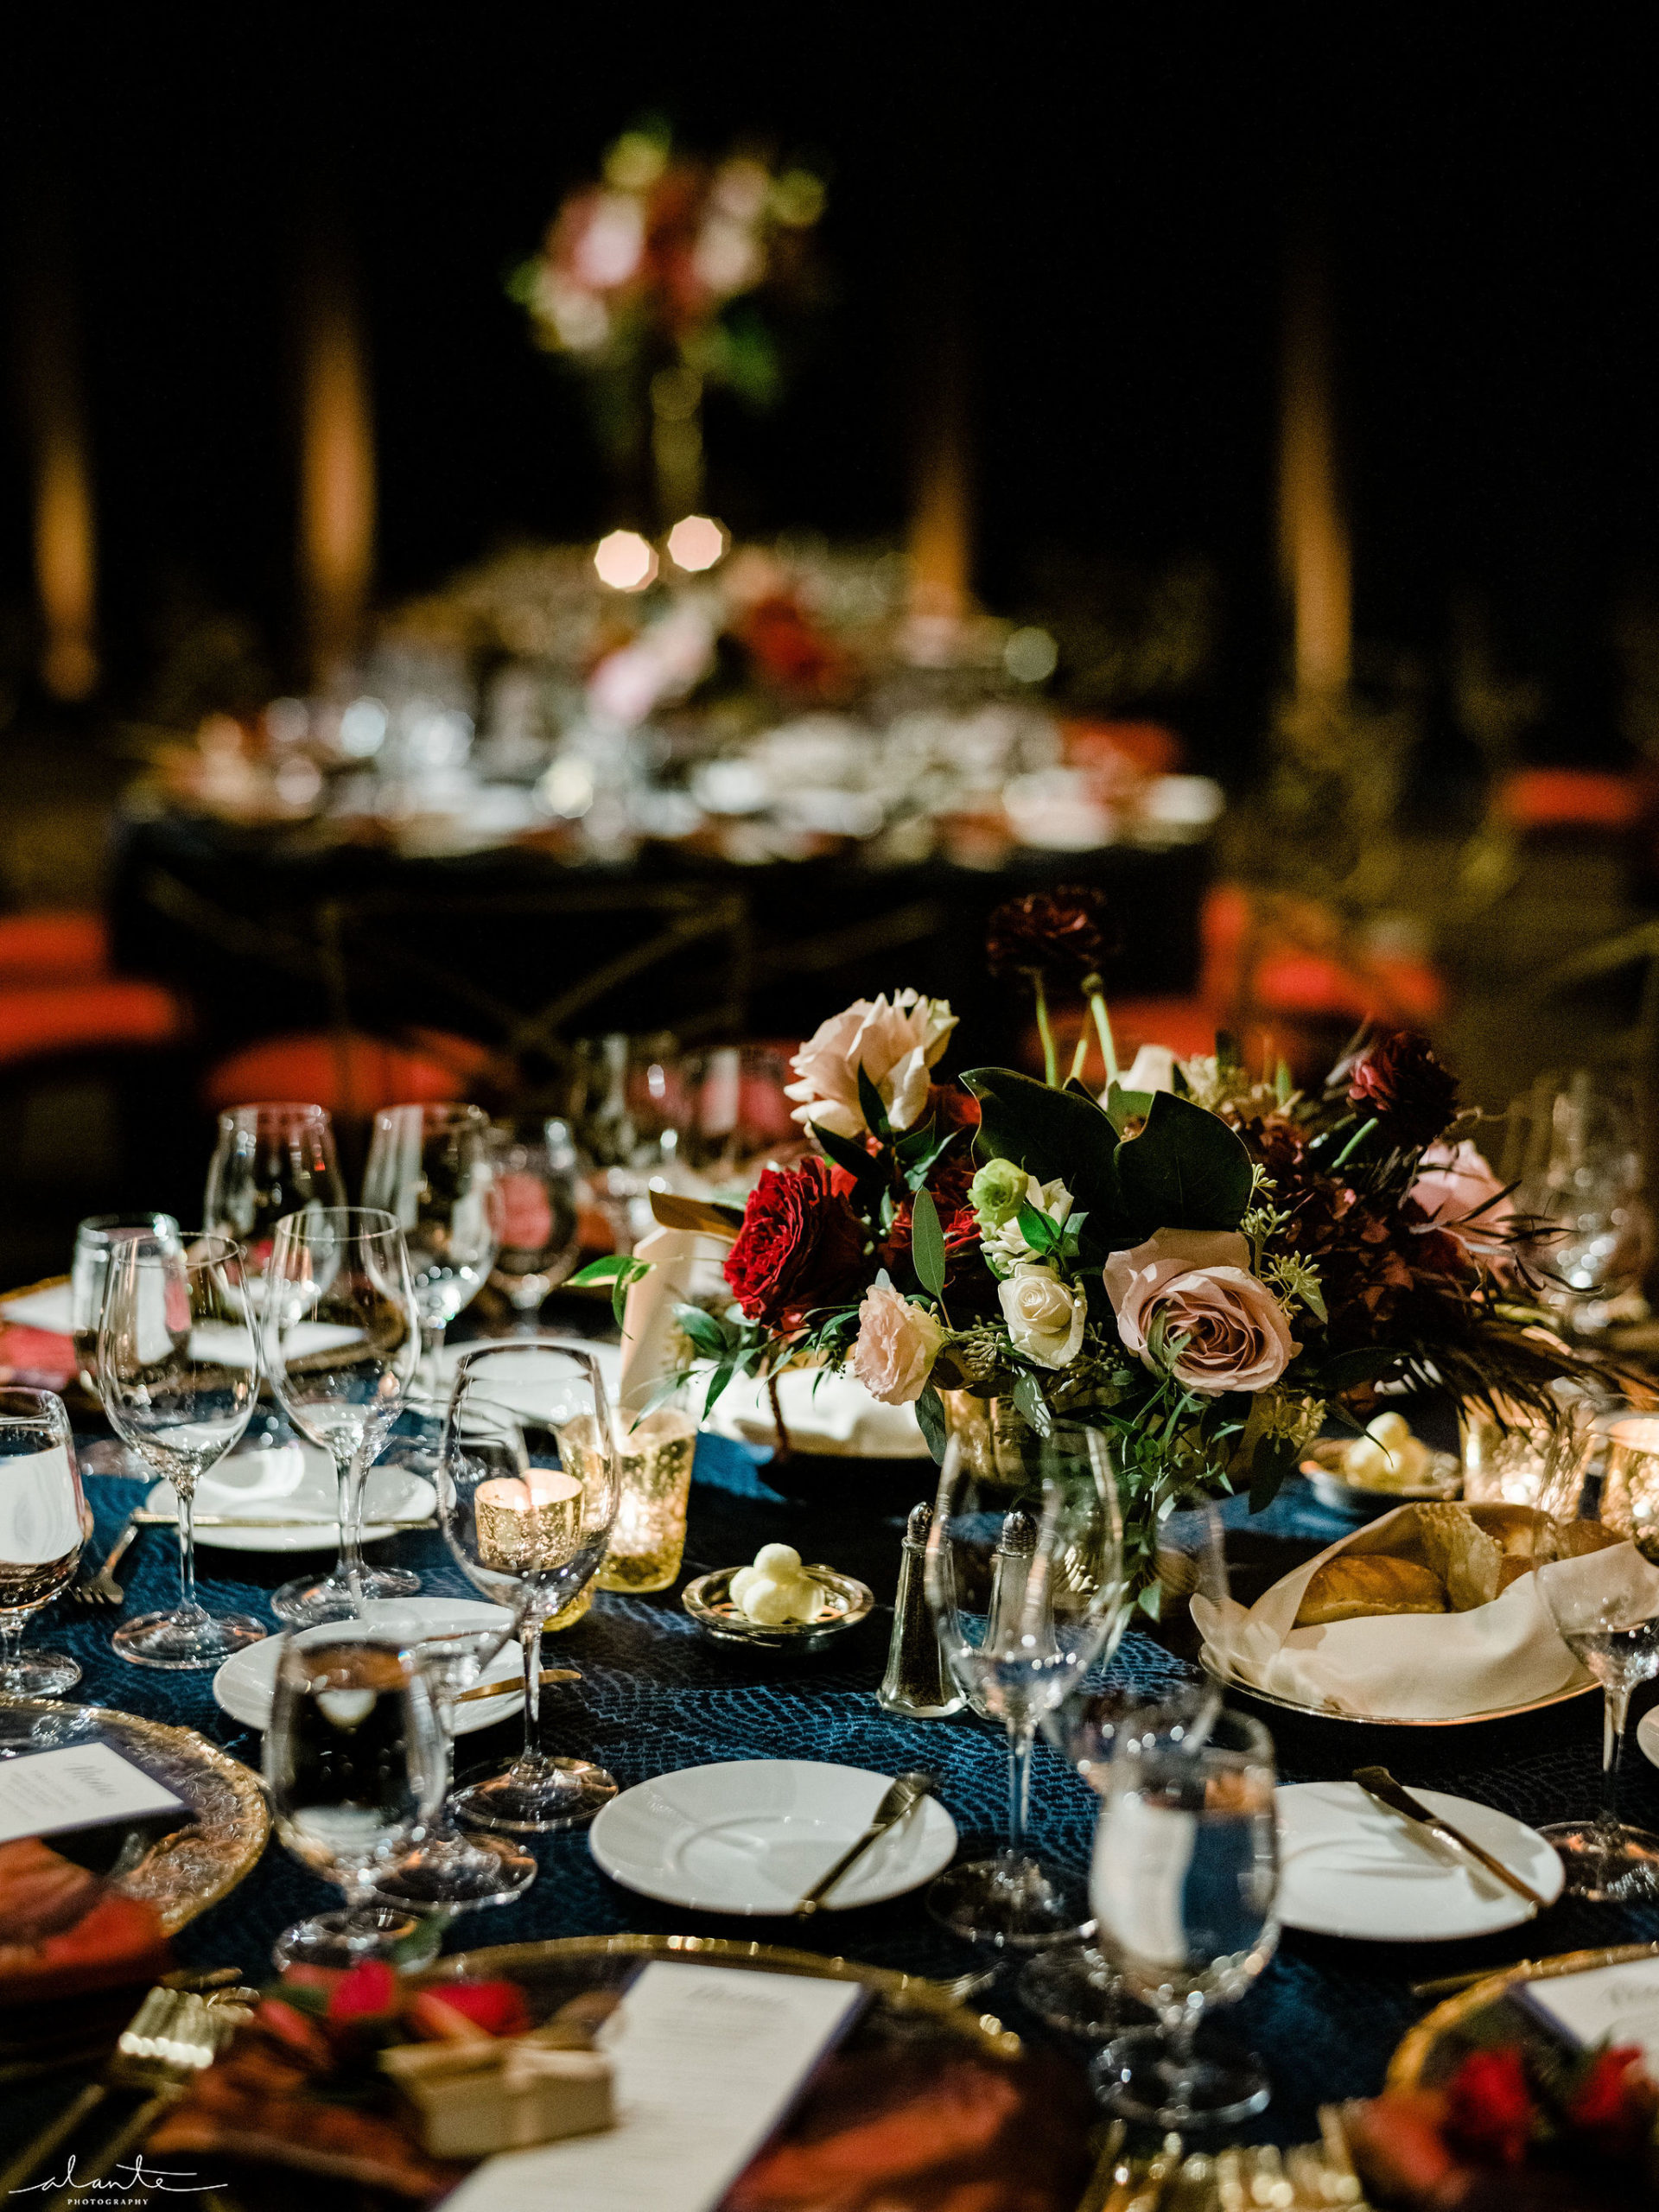 Moody winter wedding reception table setting with navy linens and dark red floral.